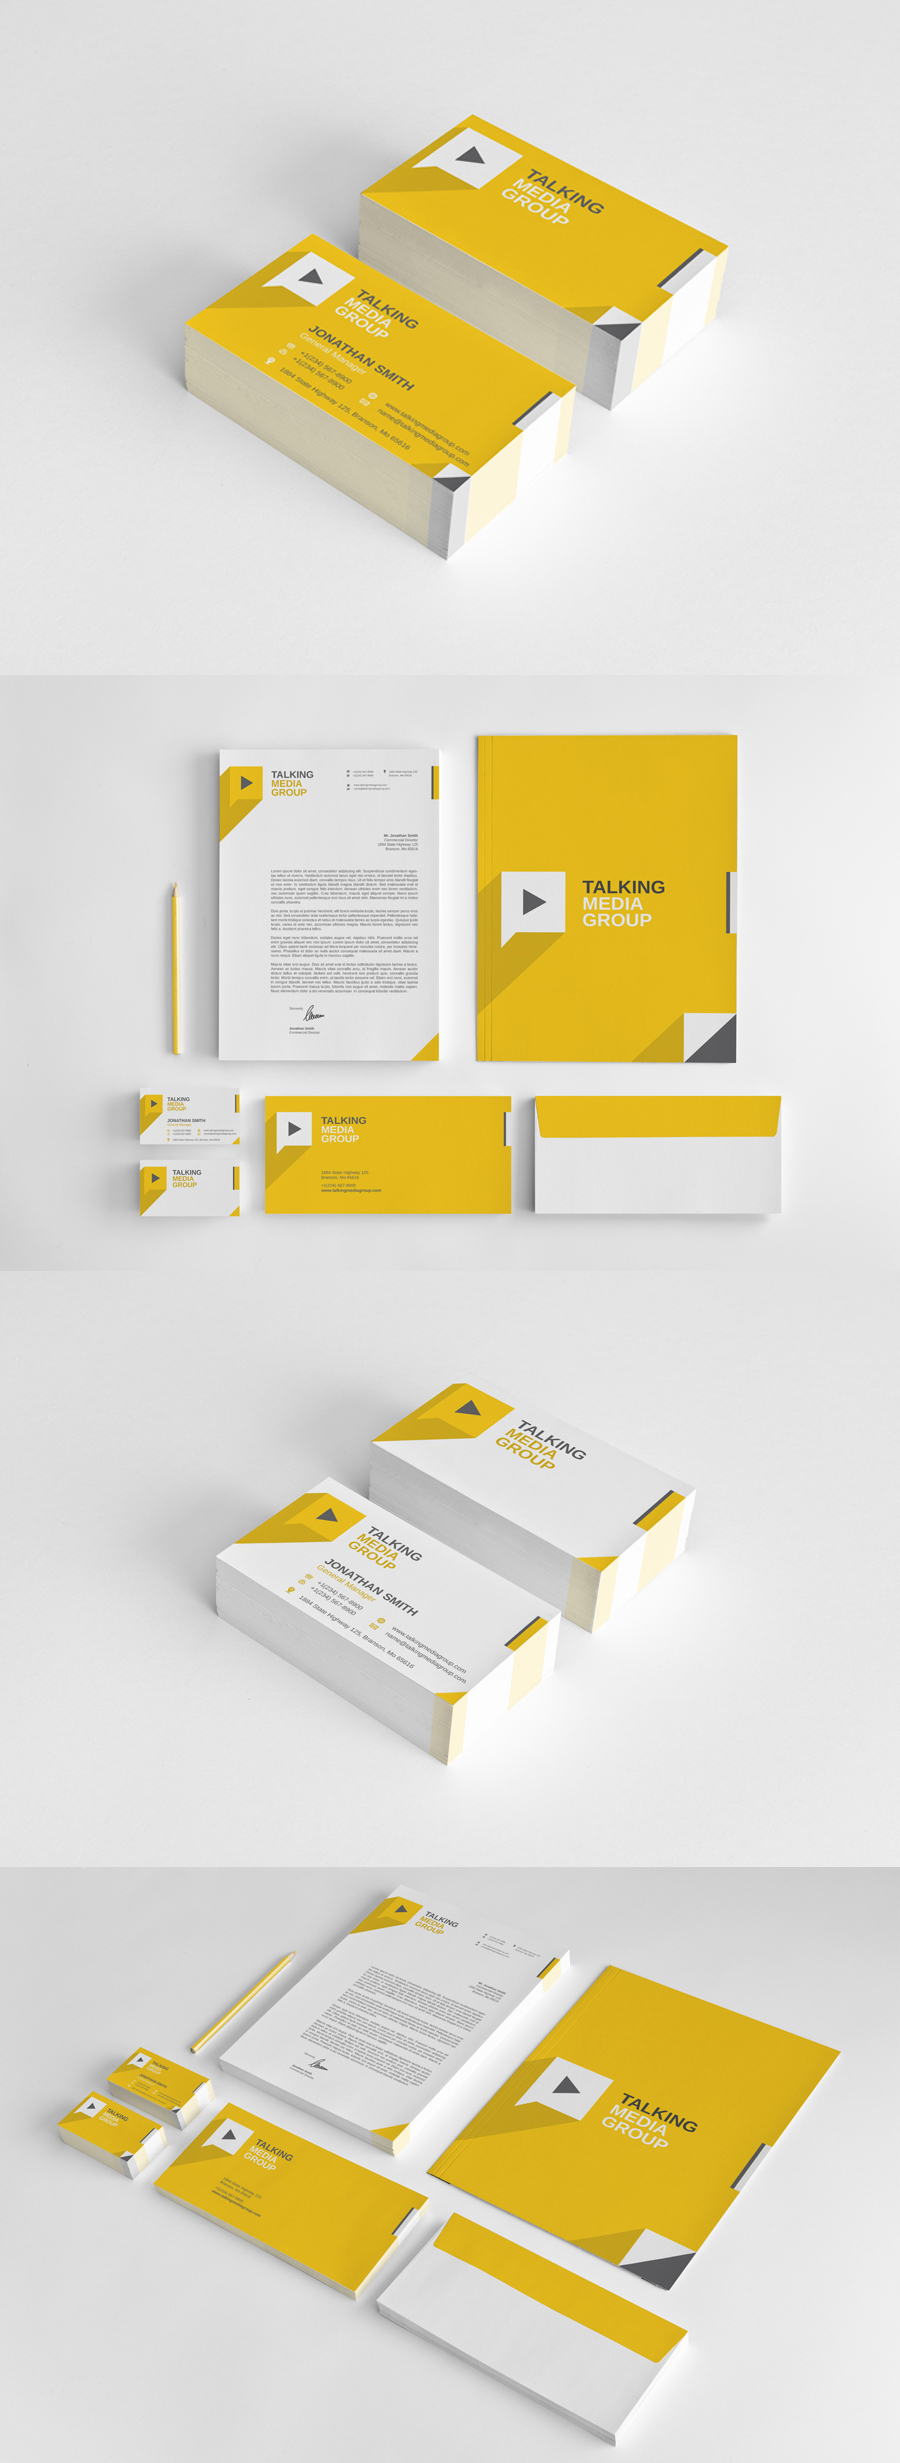 Flat Corporate Stationery vol.1 by nazdrag